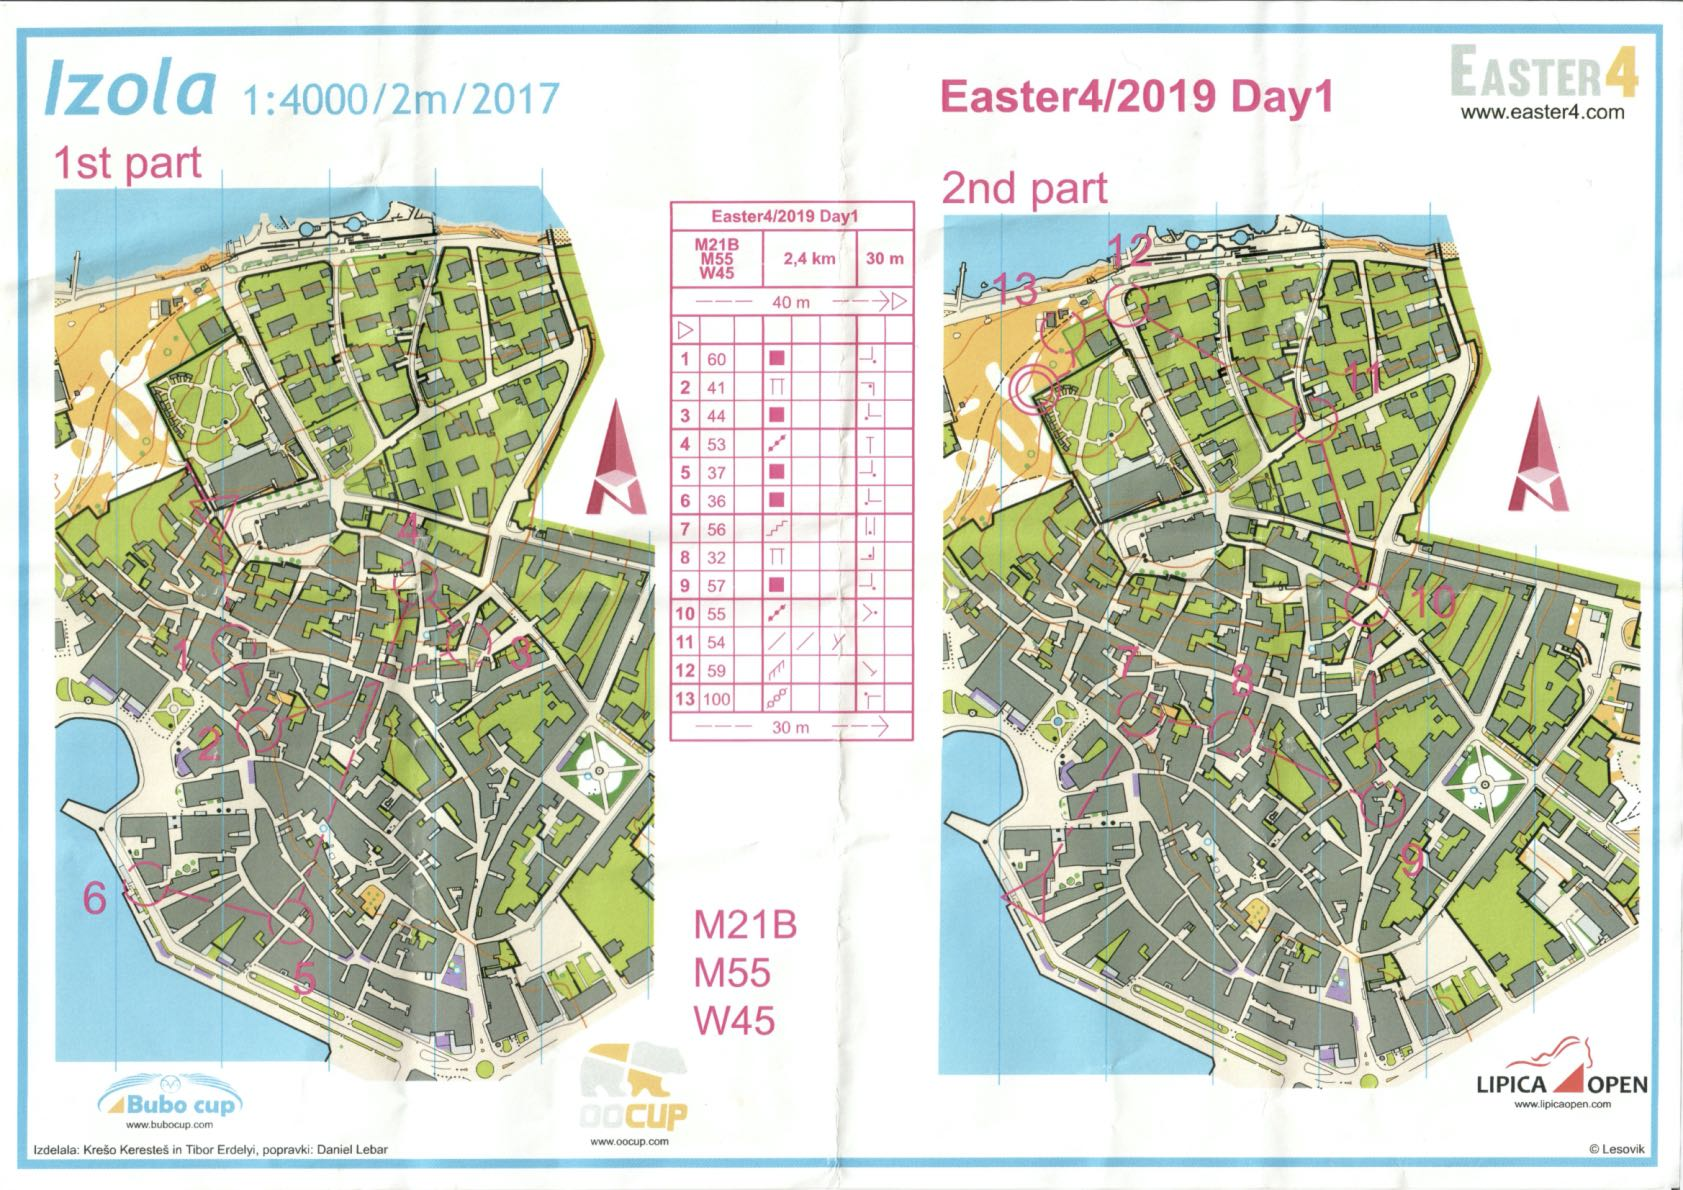 Easter4 (2019) - Day1 (19/04/2019)